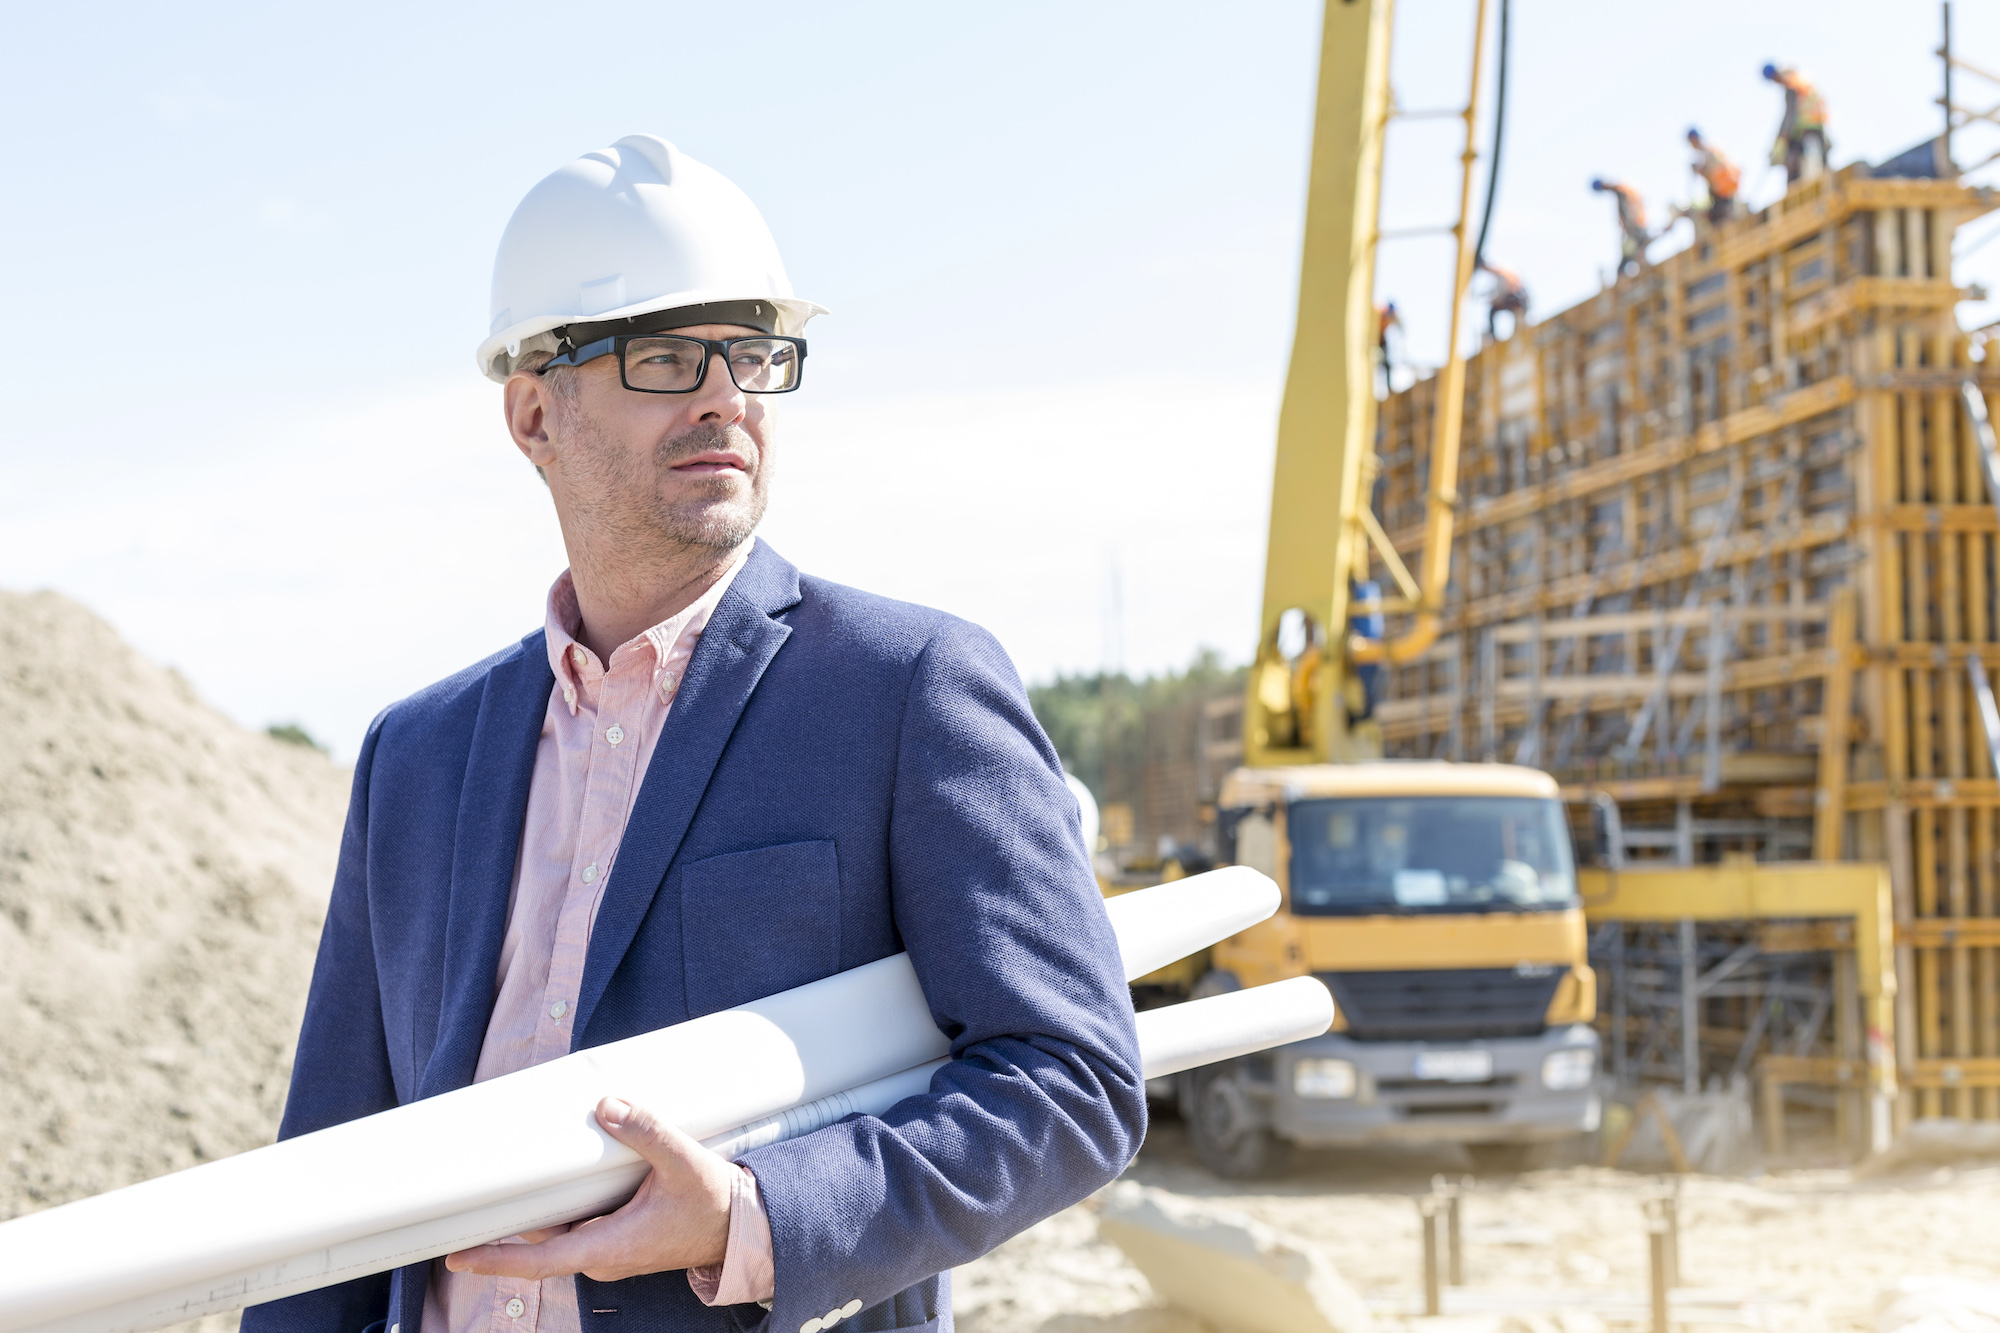 Construction Law Explained: Under Which Circumstances Can a Third Party Be Held Liable For a Construction Accident?